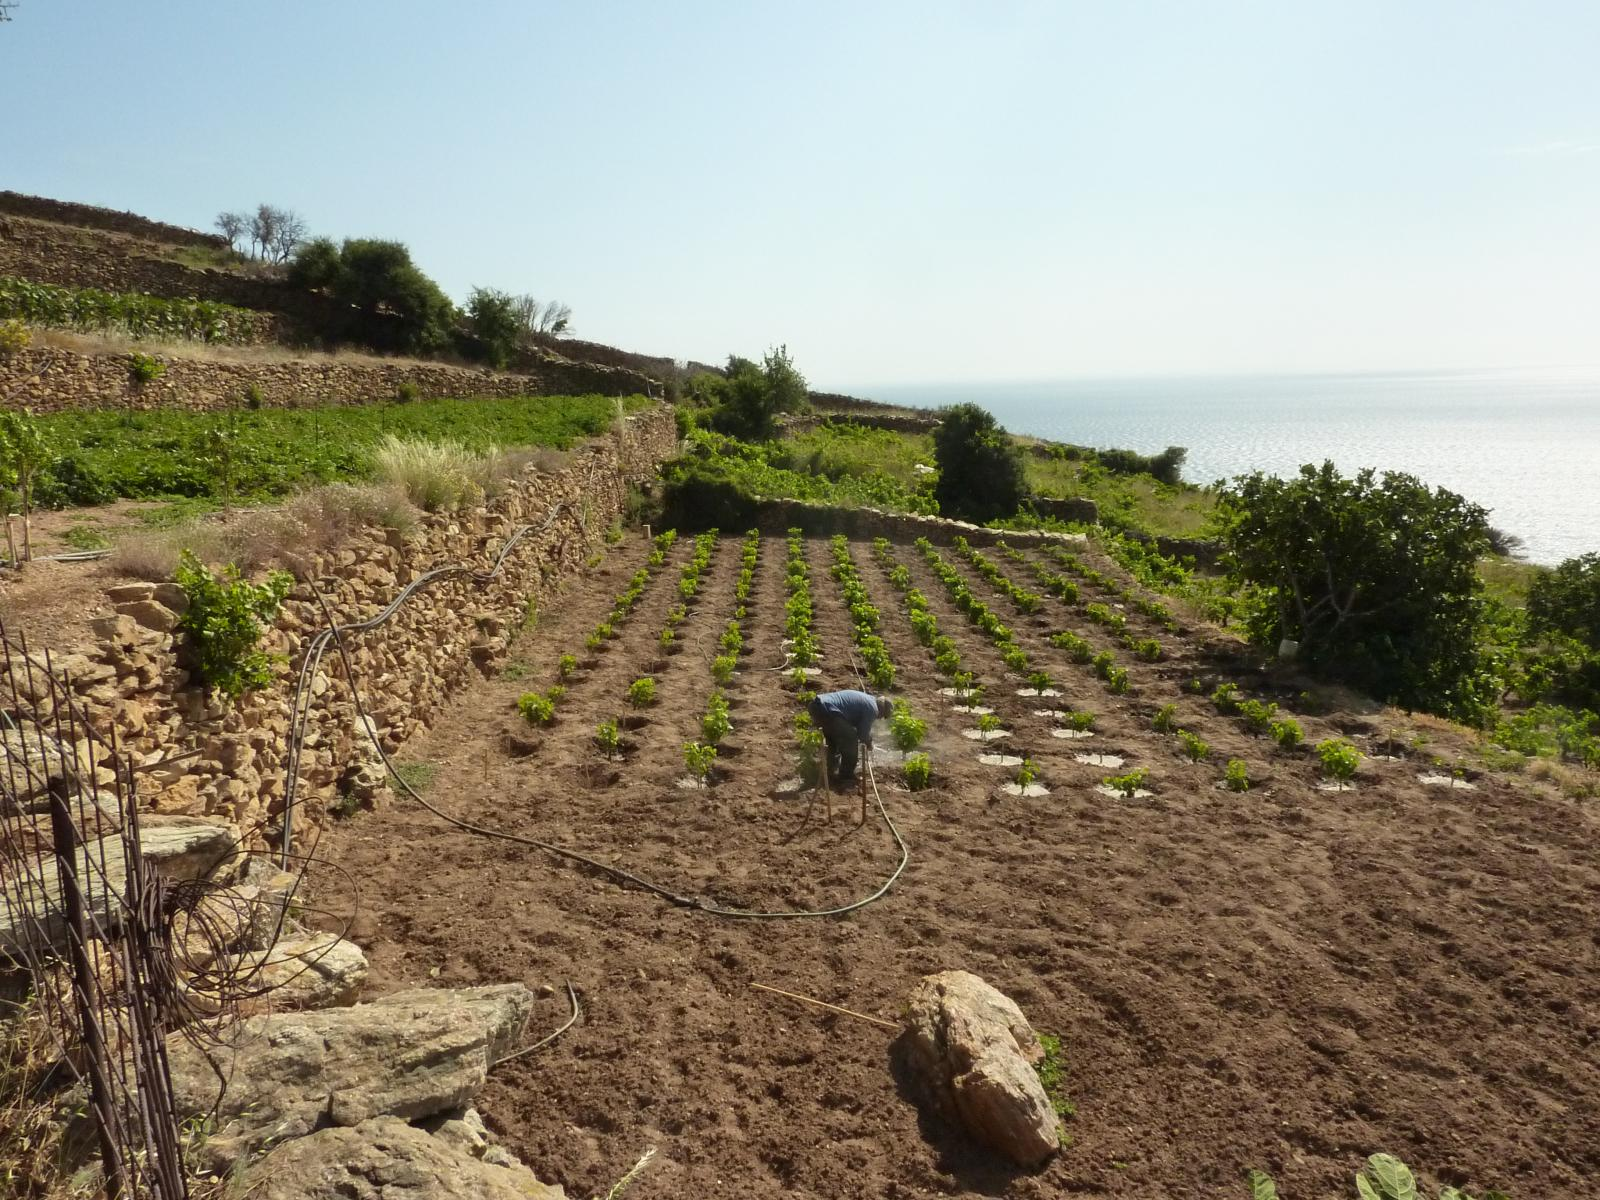 Cultivation on terraces in Amygthalia